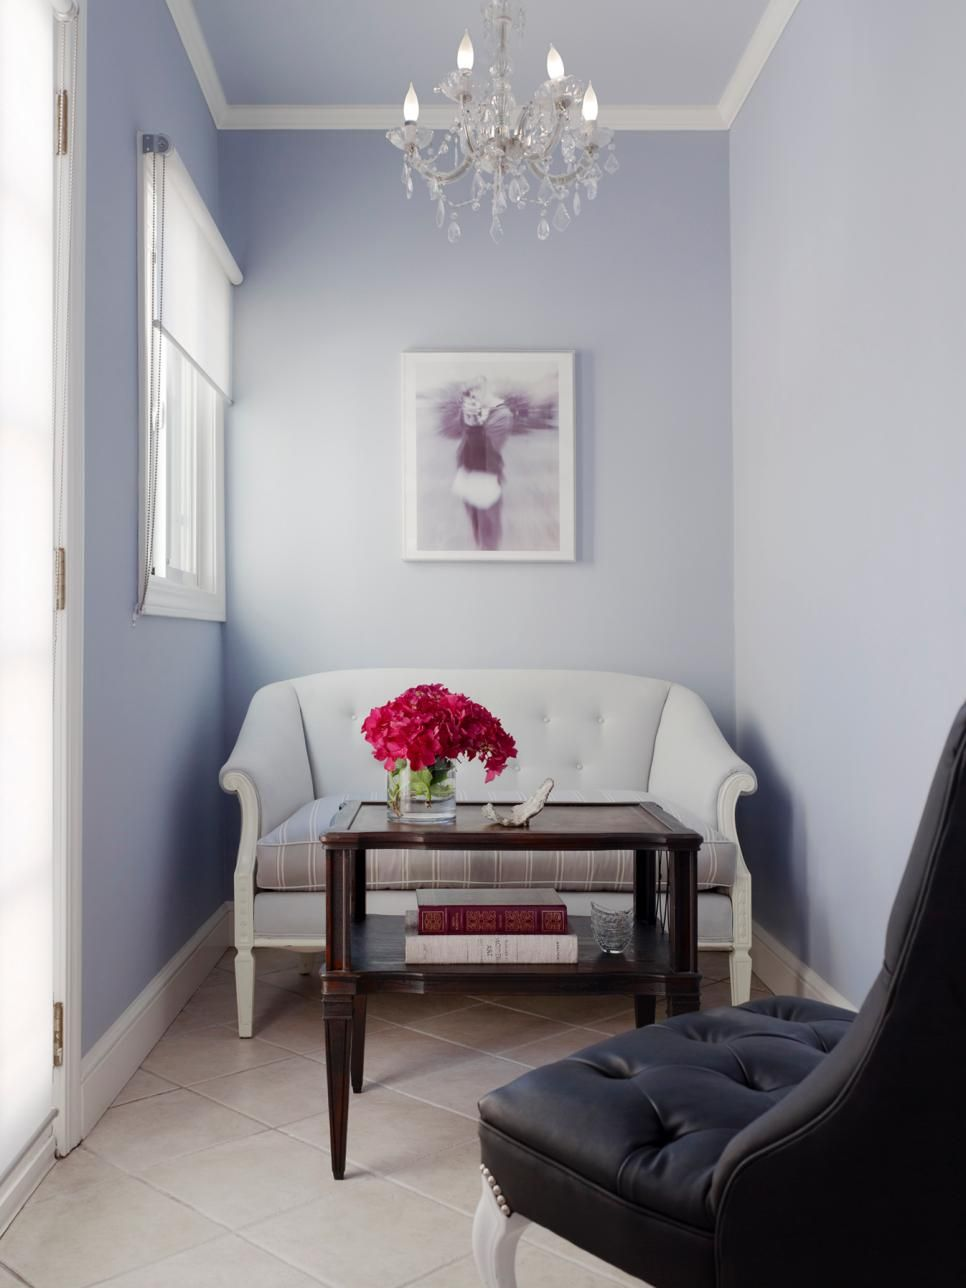 40 Lavender Rooms That Will Sweep You Right Off Your Feet